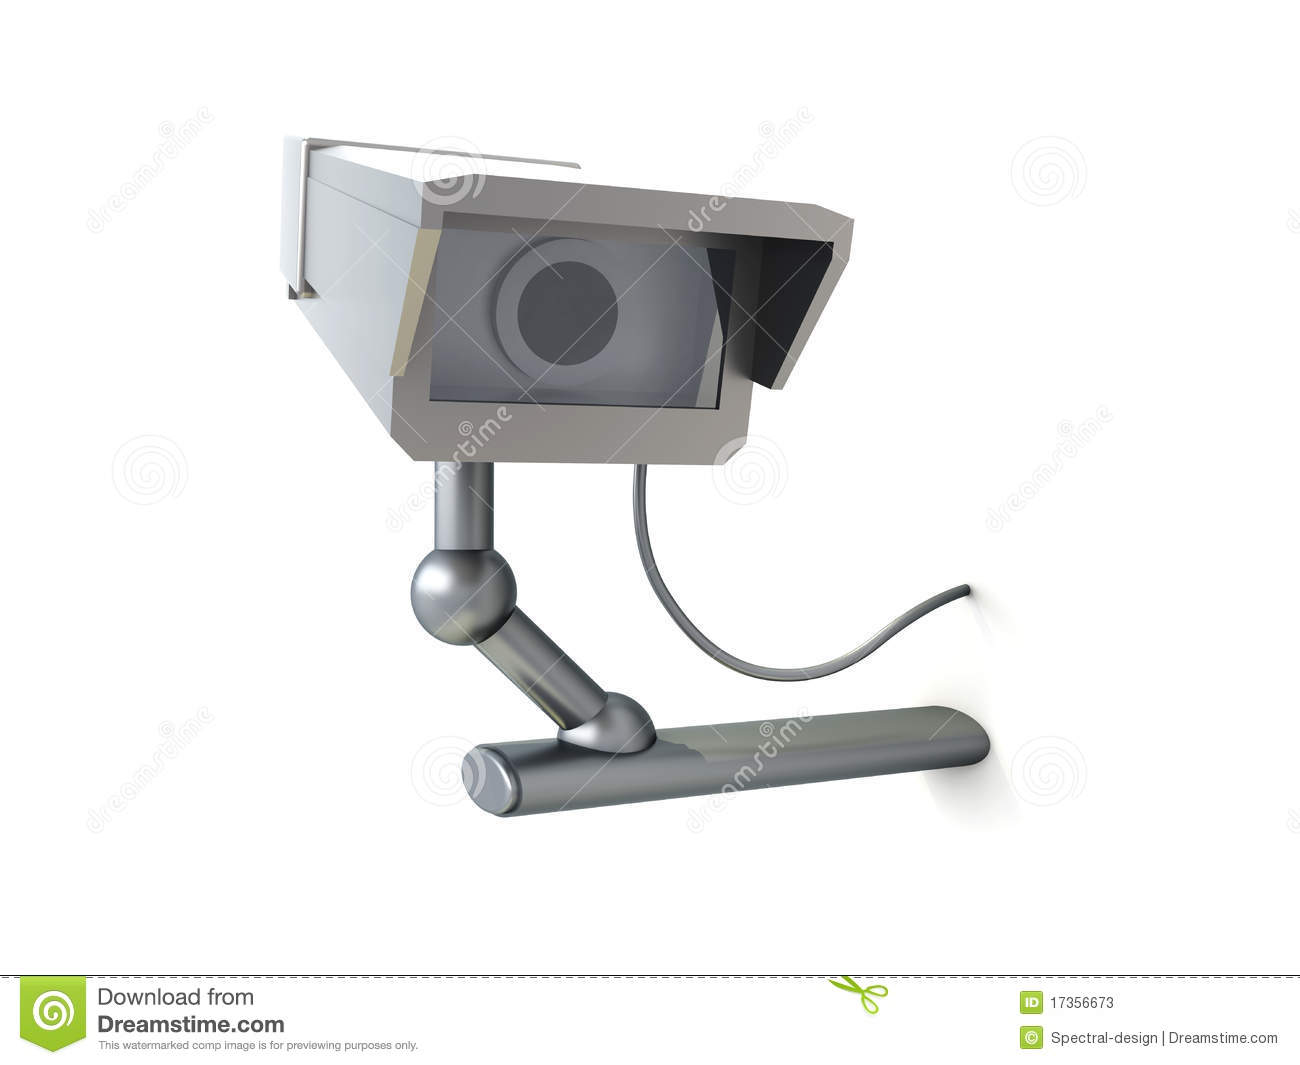 how to use webcam as cctv